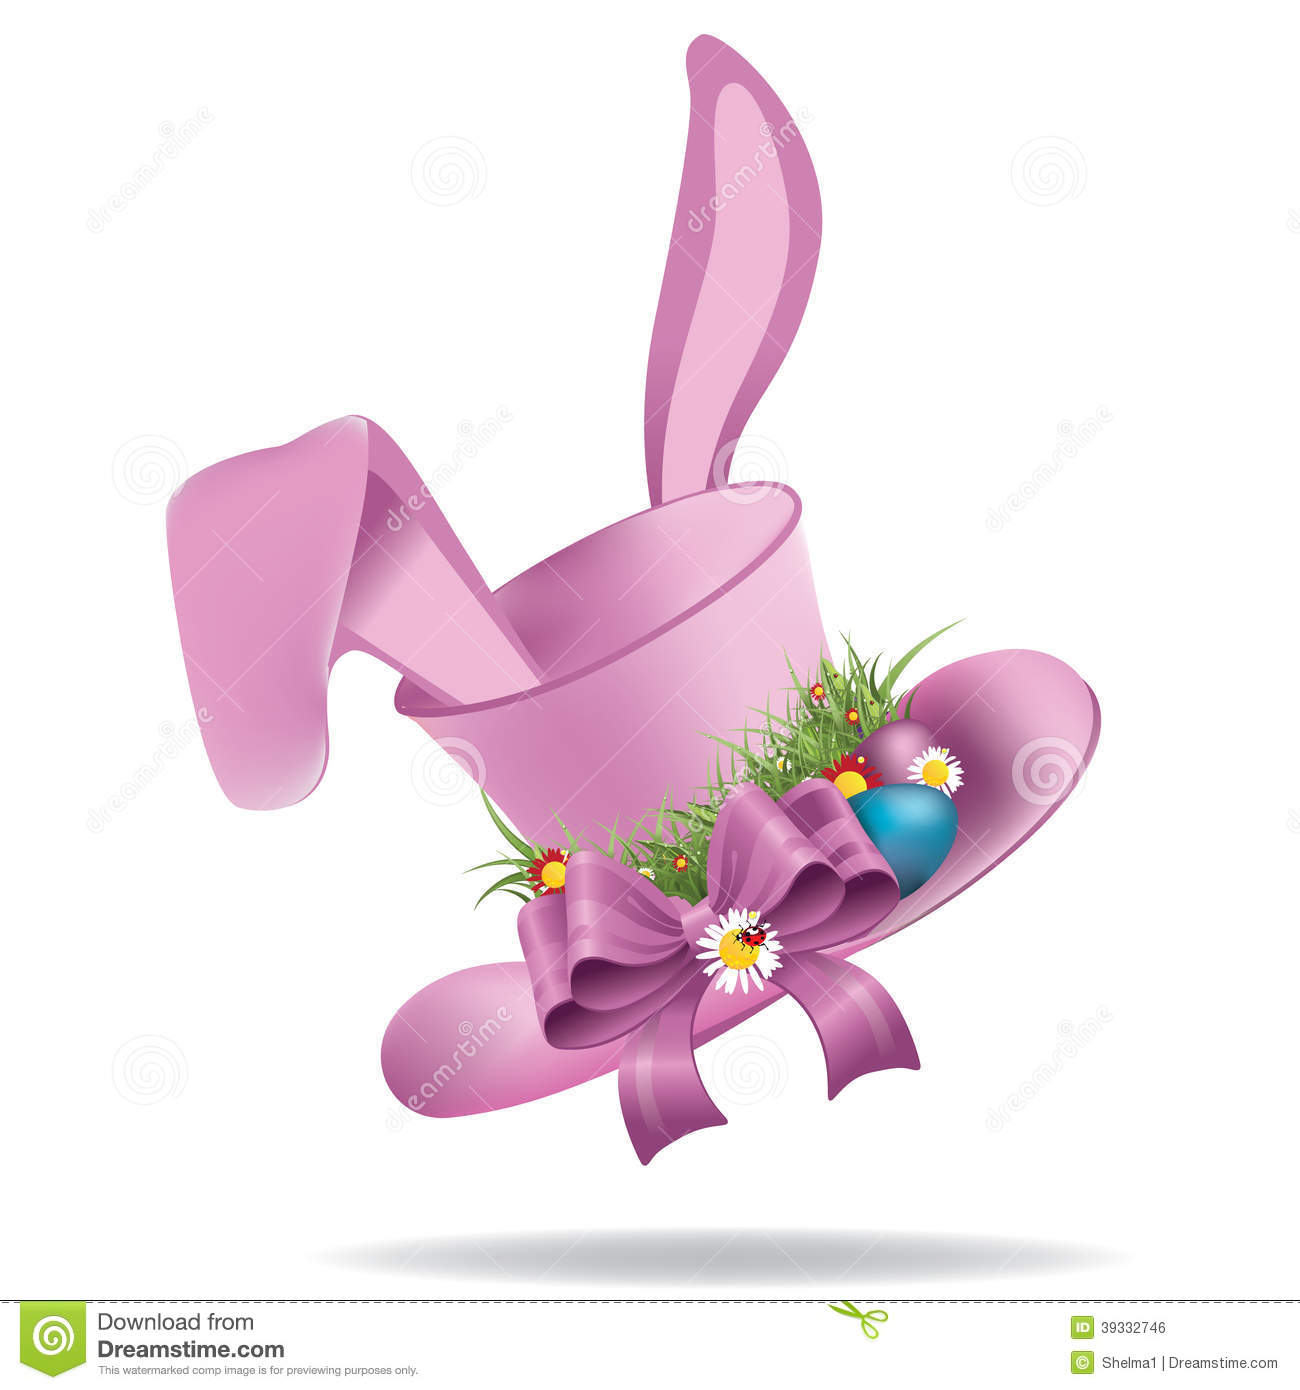 clipart easter bonnets - photo #8